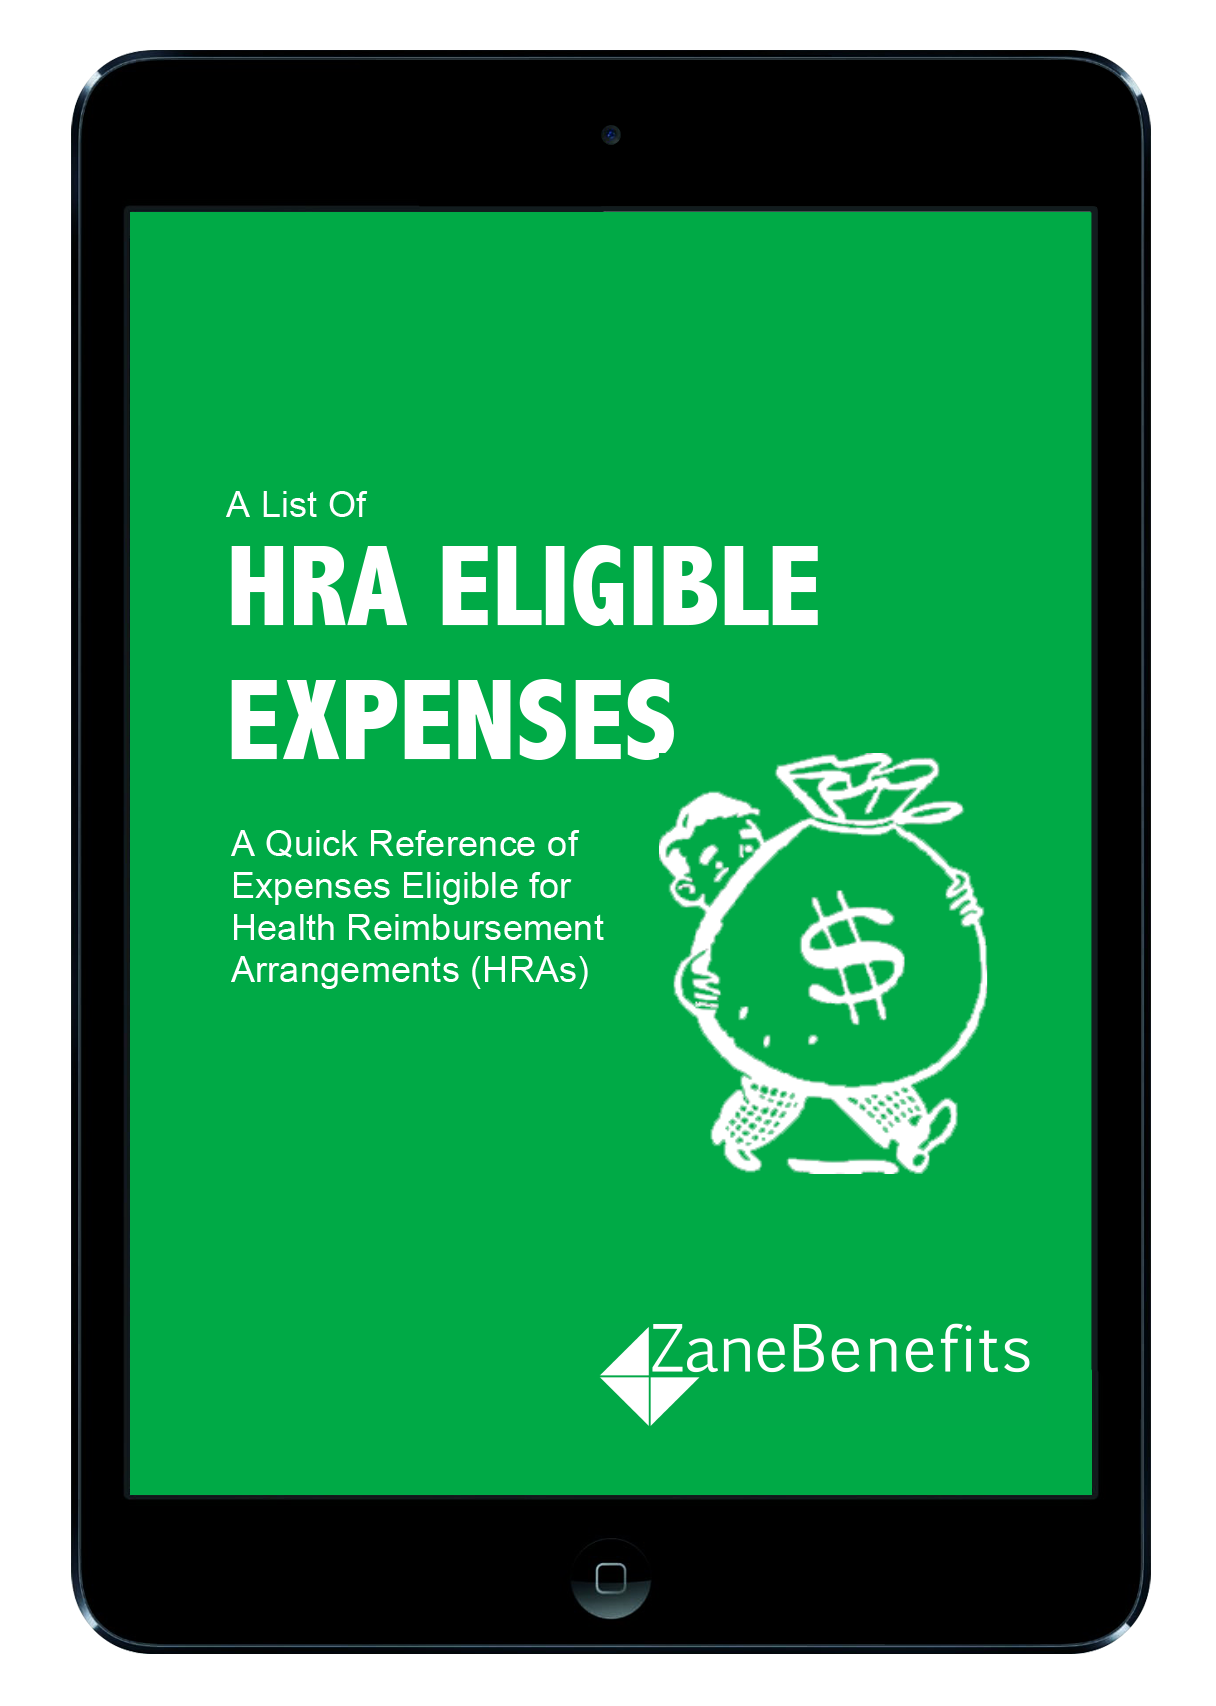 Free Reference Guide on HRA Eligible Medical and Insurance Expenses